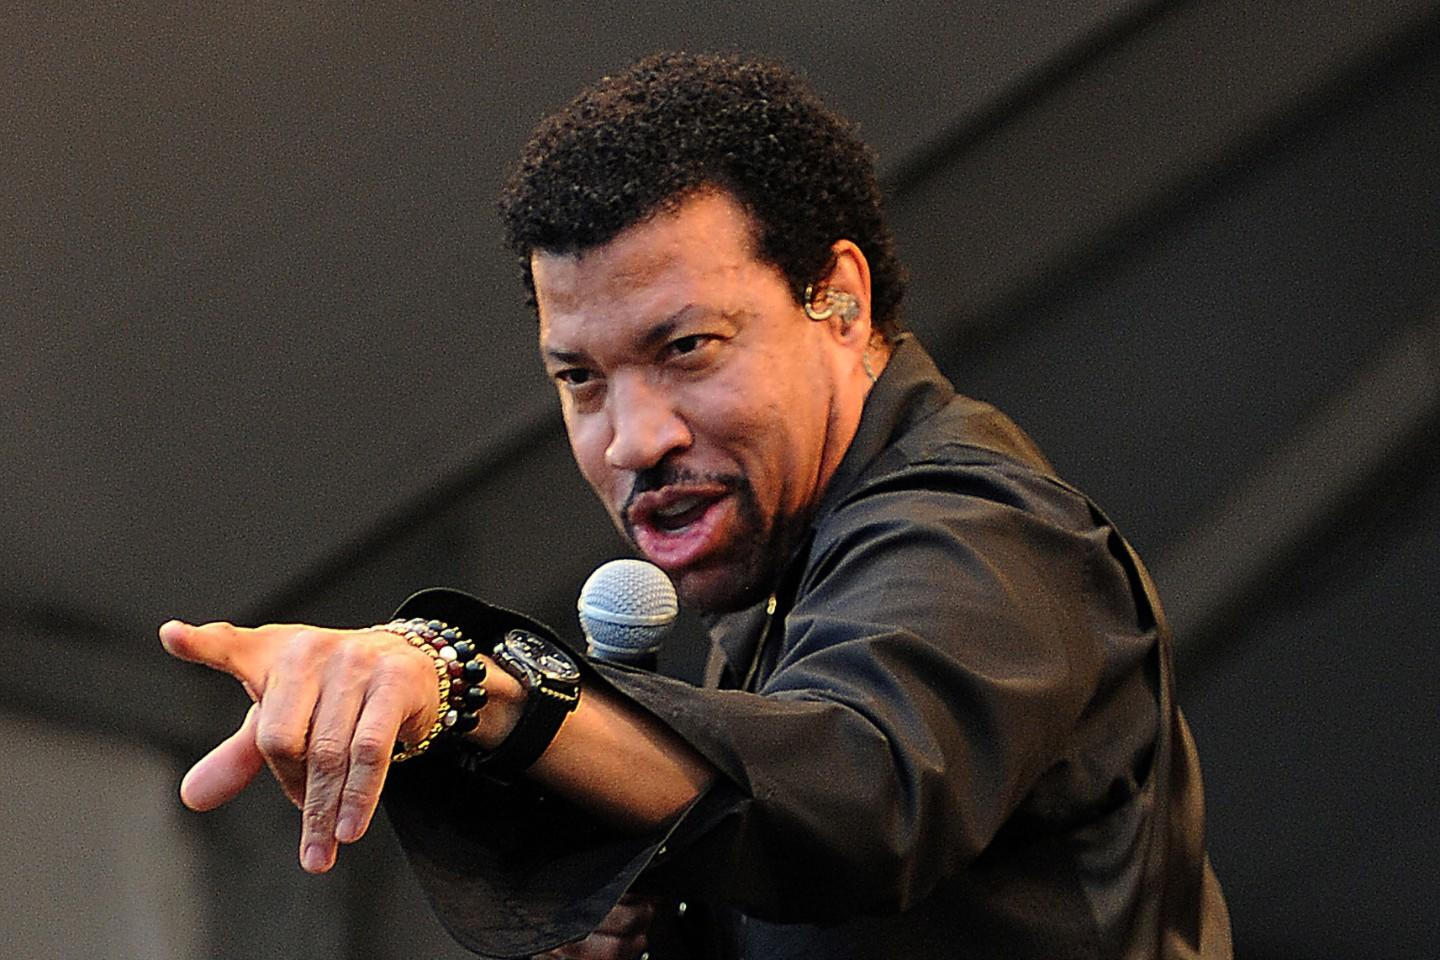 Lionel Richie Tour 2020 Lionel Richie Tickets | Lionel Richie Tour Dates 2020 and Concert